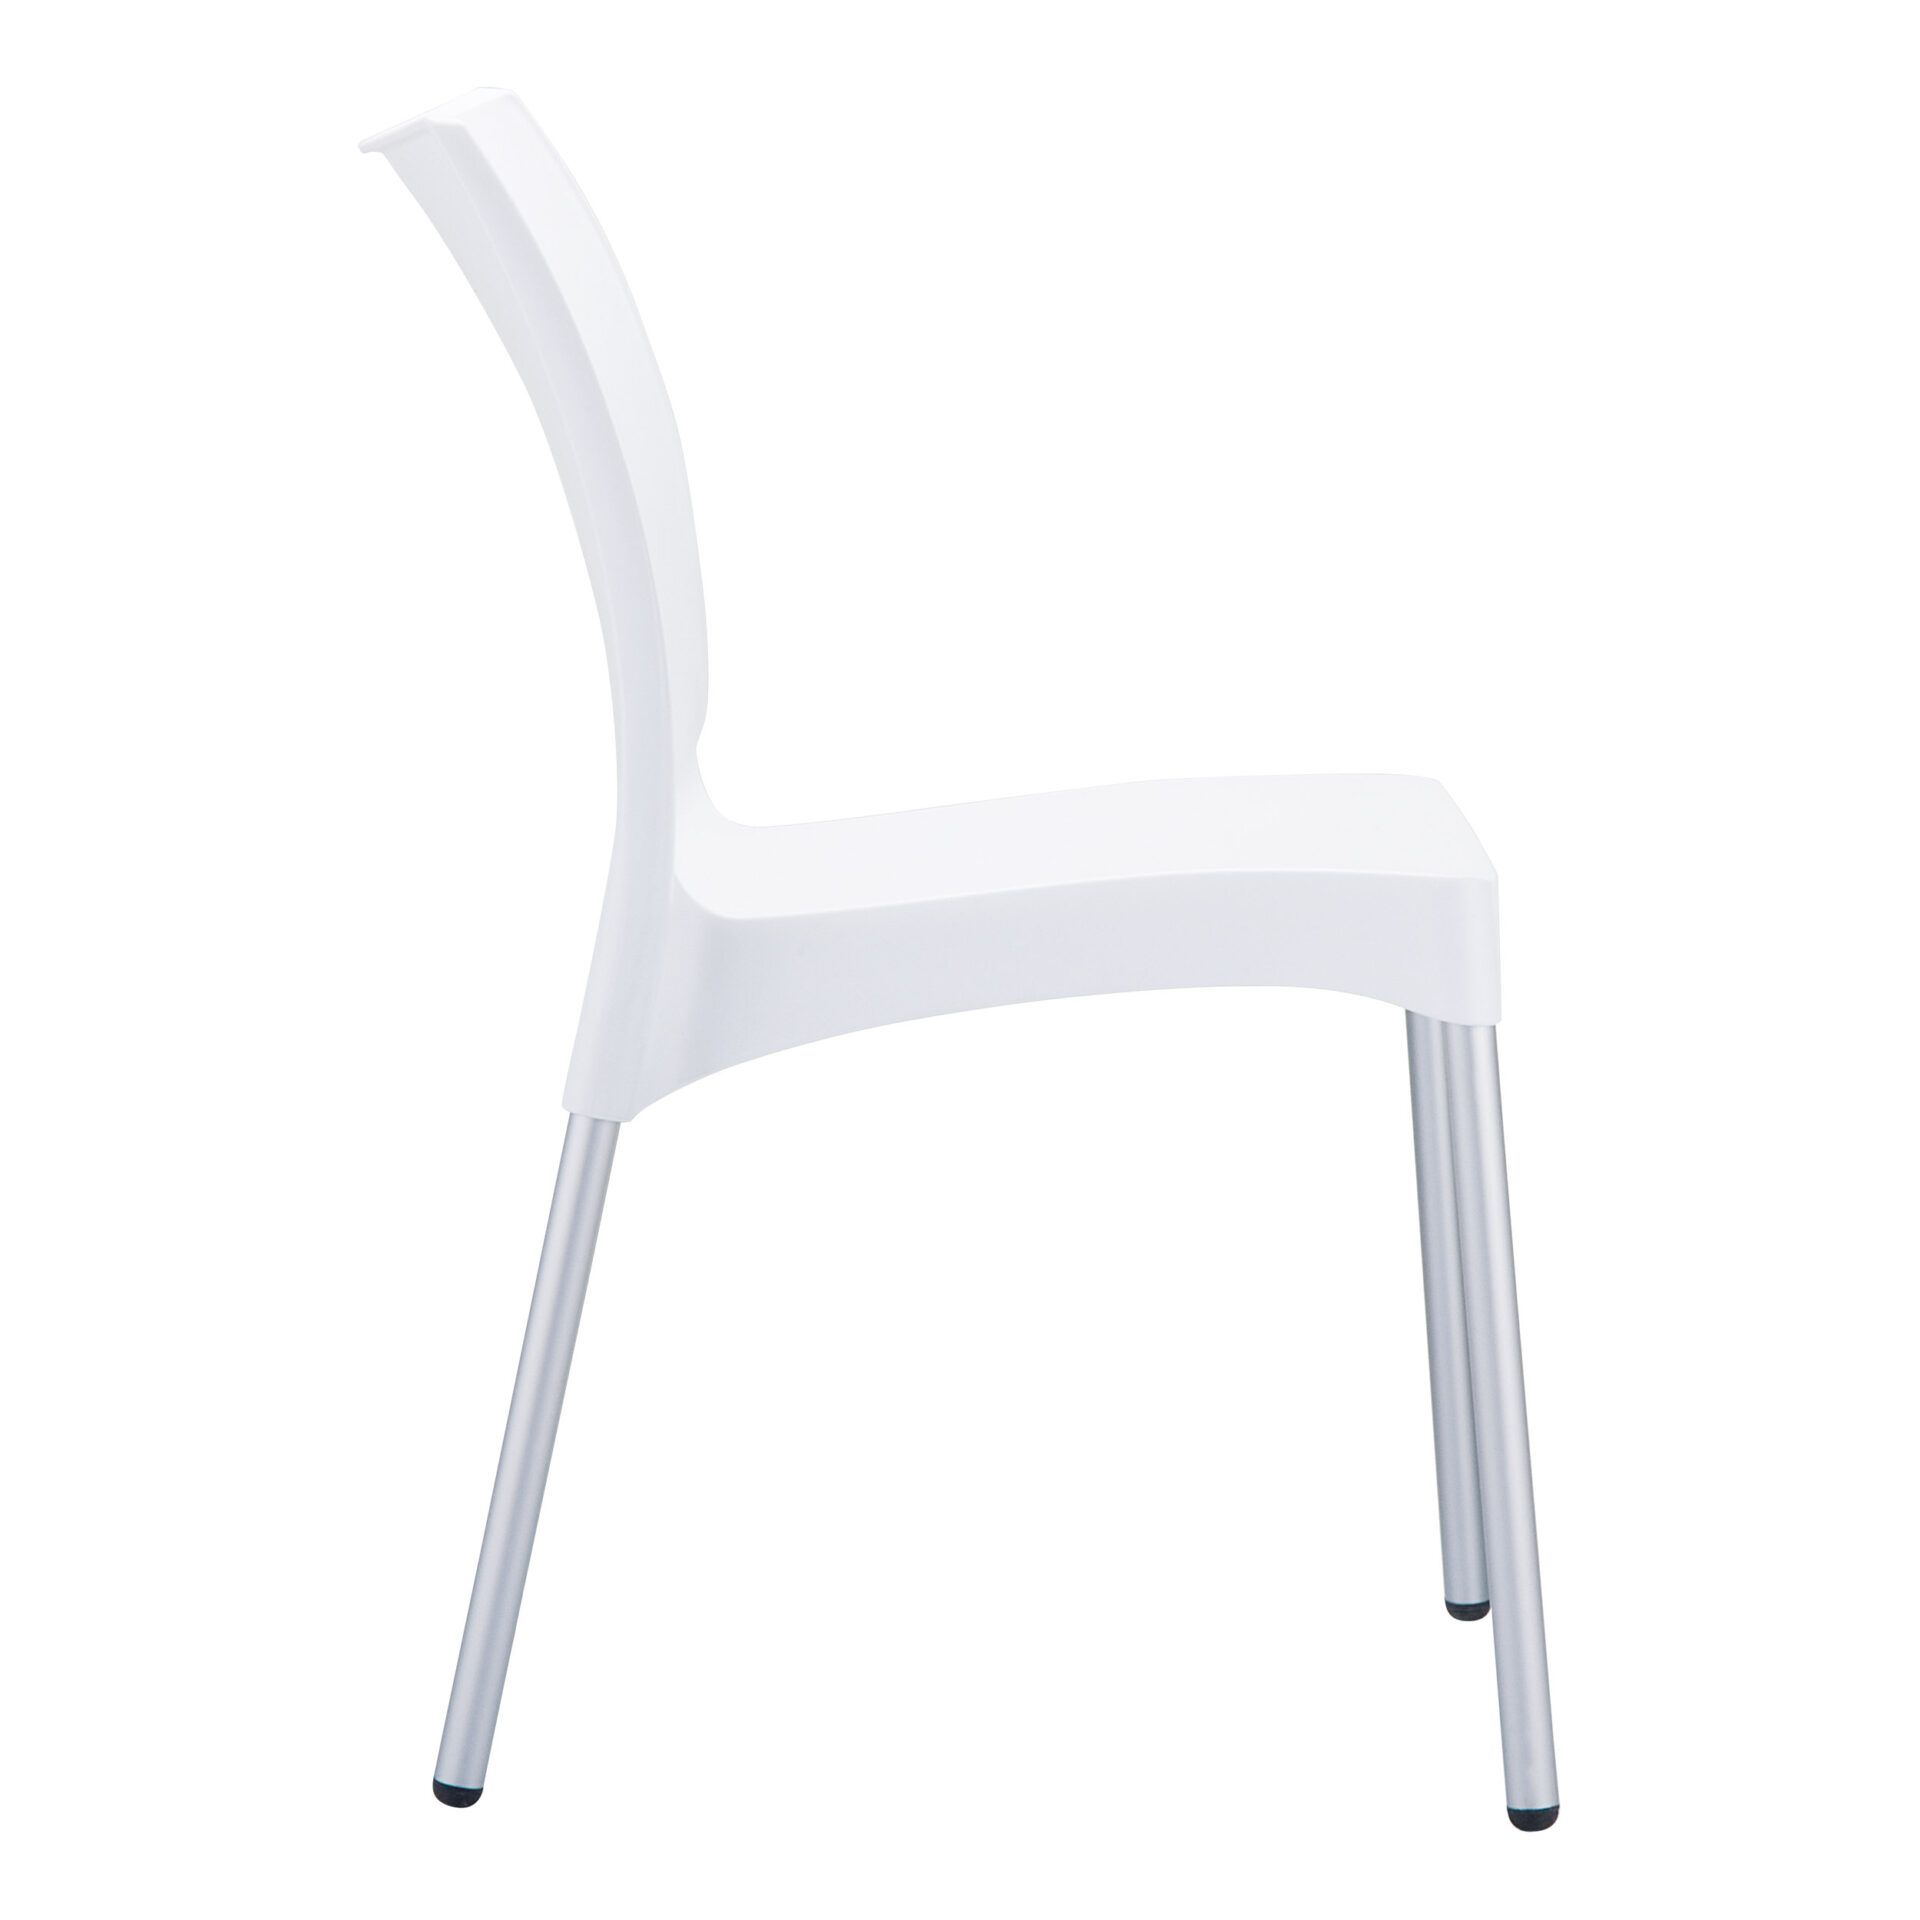 commercial outdoor hospitality seating vita chair white side